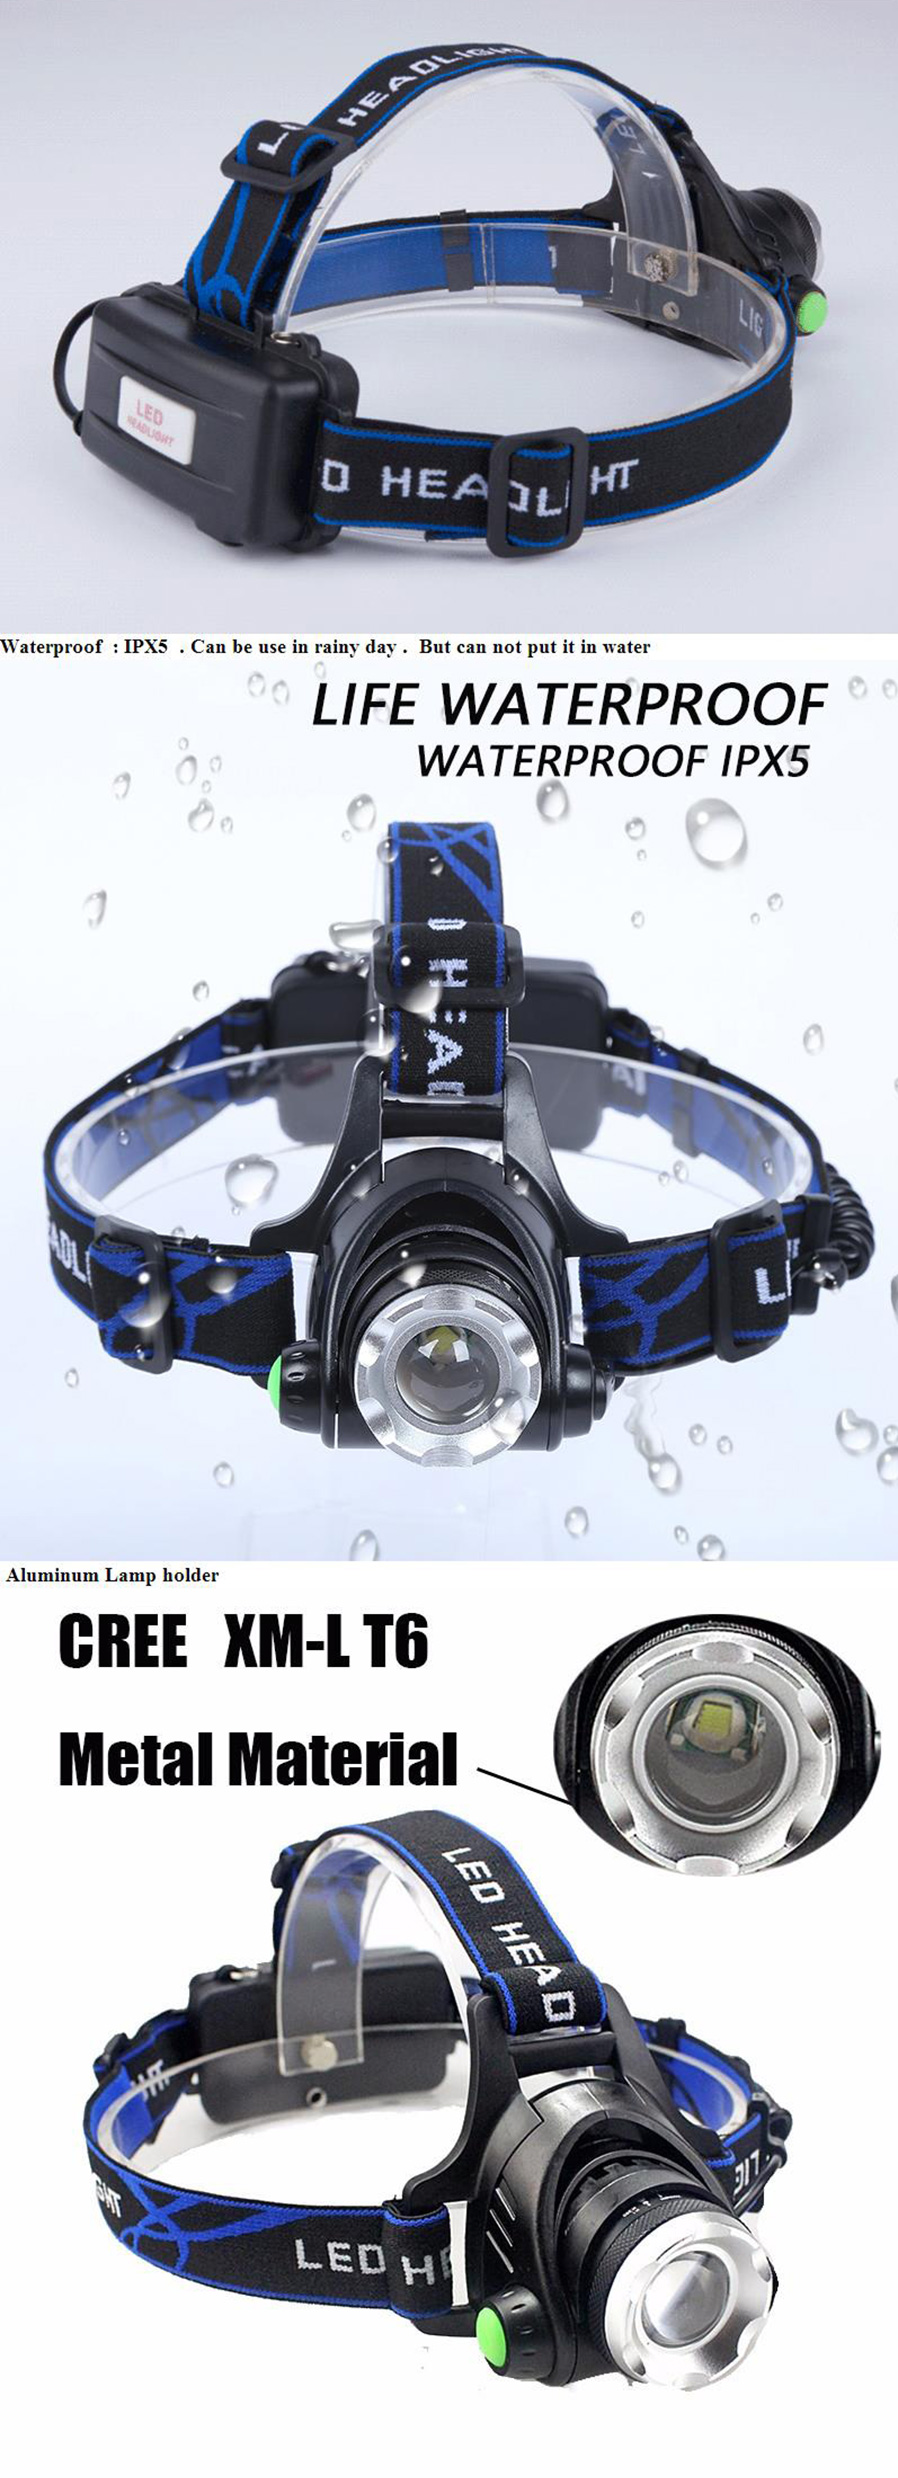 Led 3 Mode 500lm White Xm L L2 Zooming Headlight Black 2 X 18650 T6 High Power Headlamp Cree 5000 Lumens Major Advantage With 1 Brightness Light Beadadjustable Lamp Service Life Up To 100 Thousand Hours